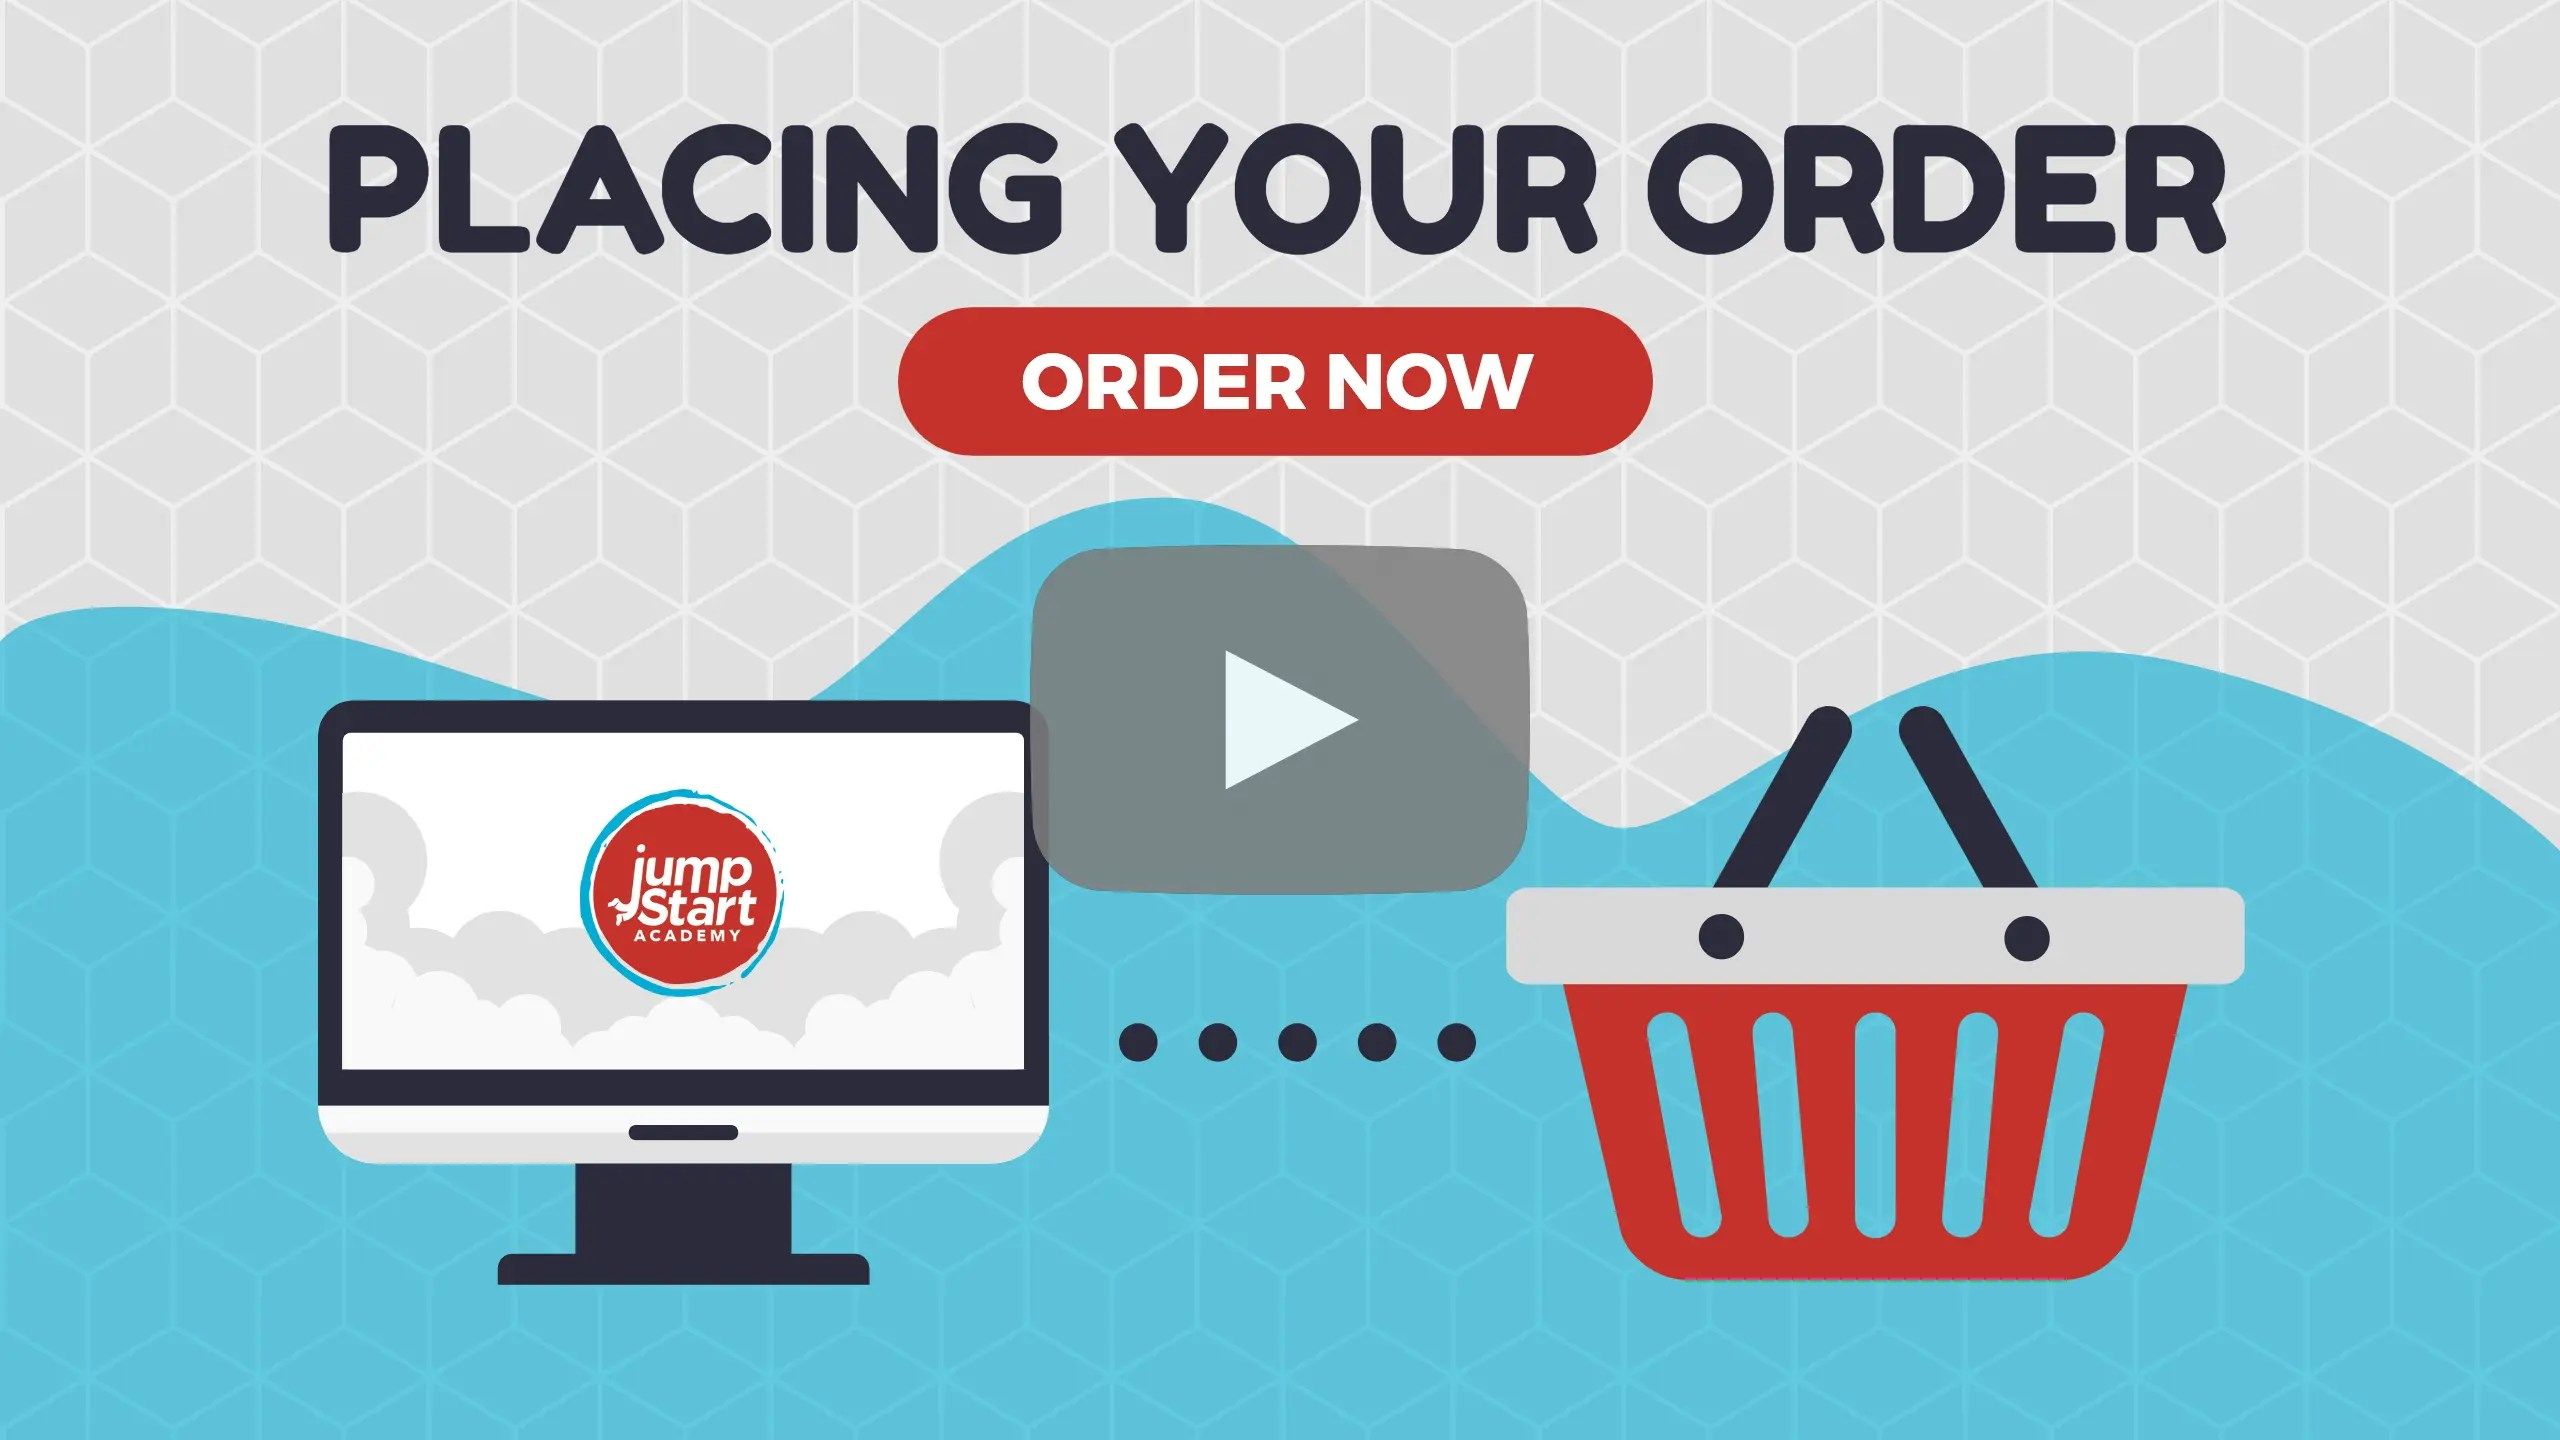 How to place your order